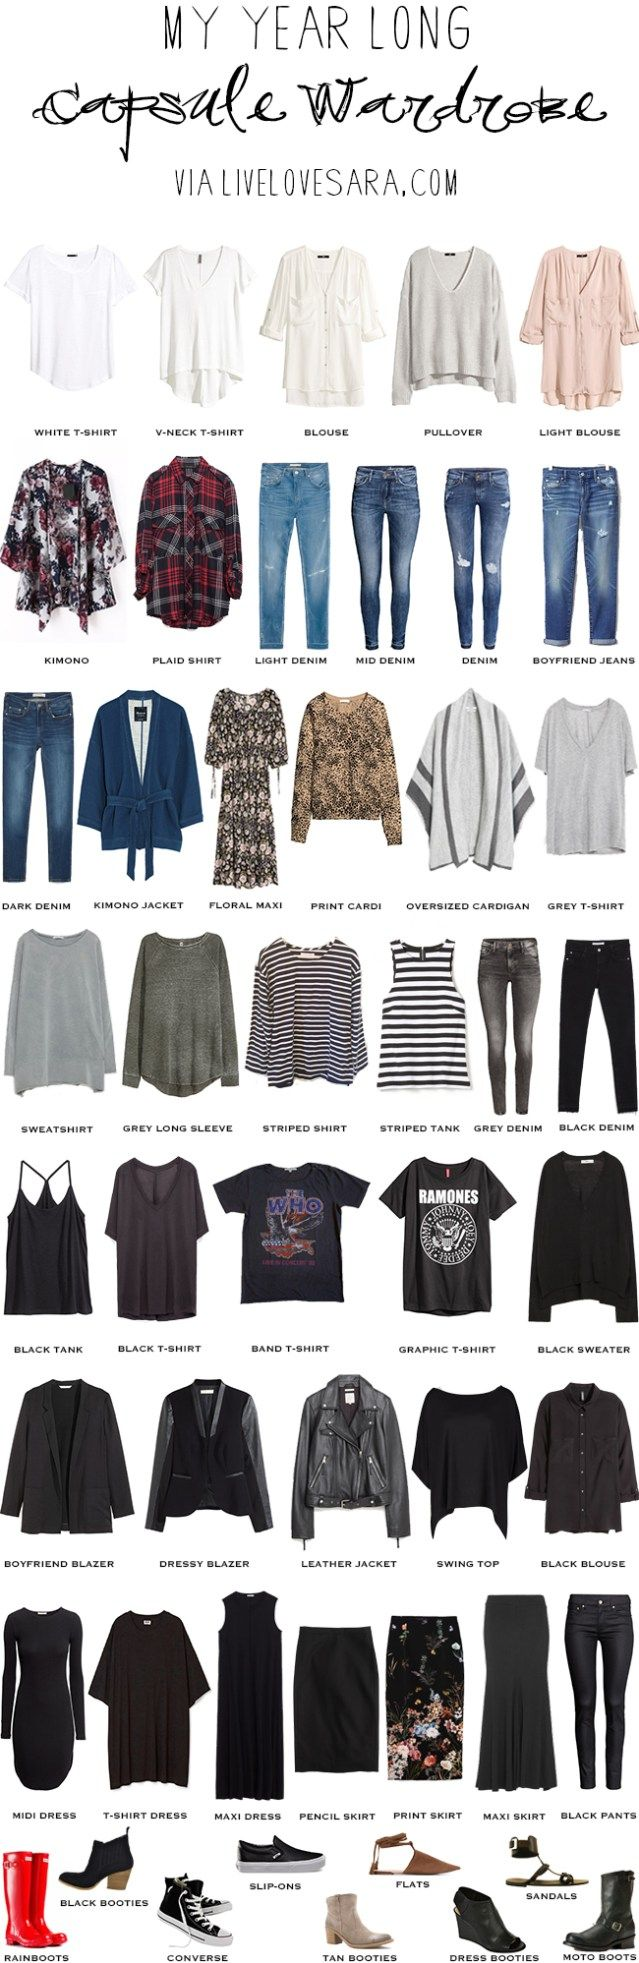 In my last post I had a request for a packing list for what to wear in Ljubljana, Slovenia for 21 days in July/August.